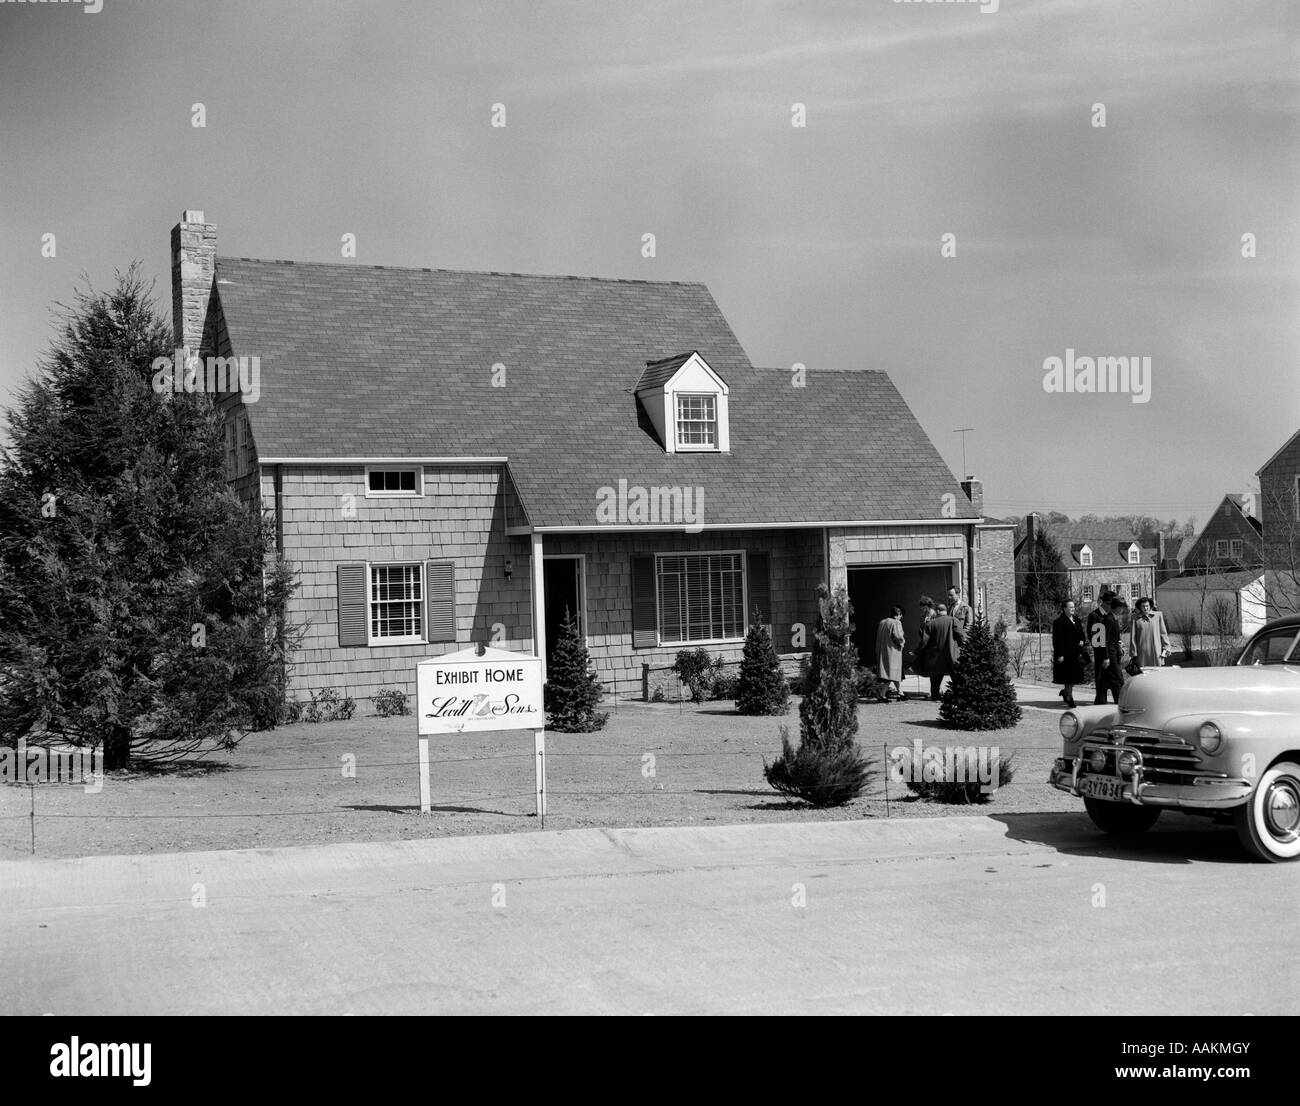 1940s 1950s LEVITTOWN MODEL HOME WITH SIGN OF LEVITT & SONS EXHIBIT HOME WITH PEOPLE MILLING ABOUT - Stock Image